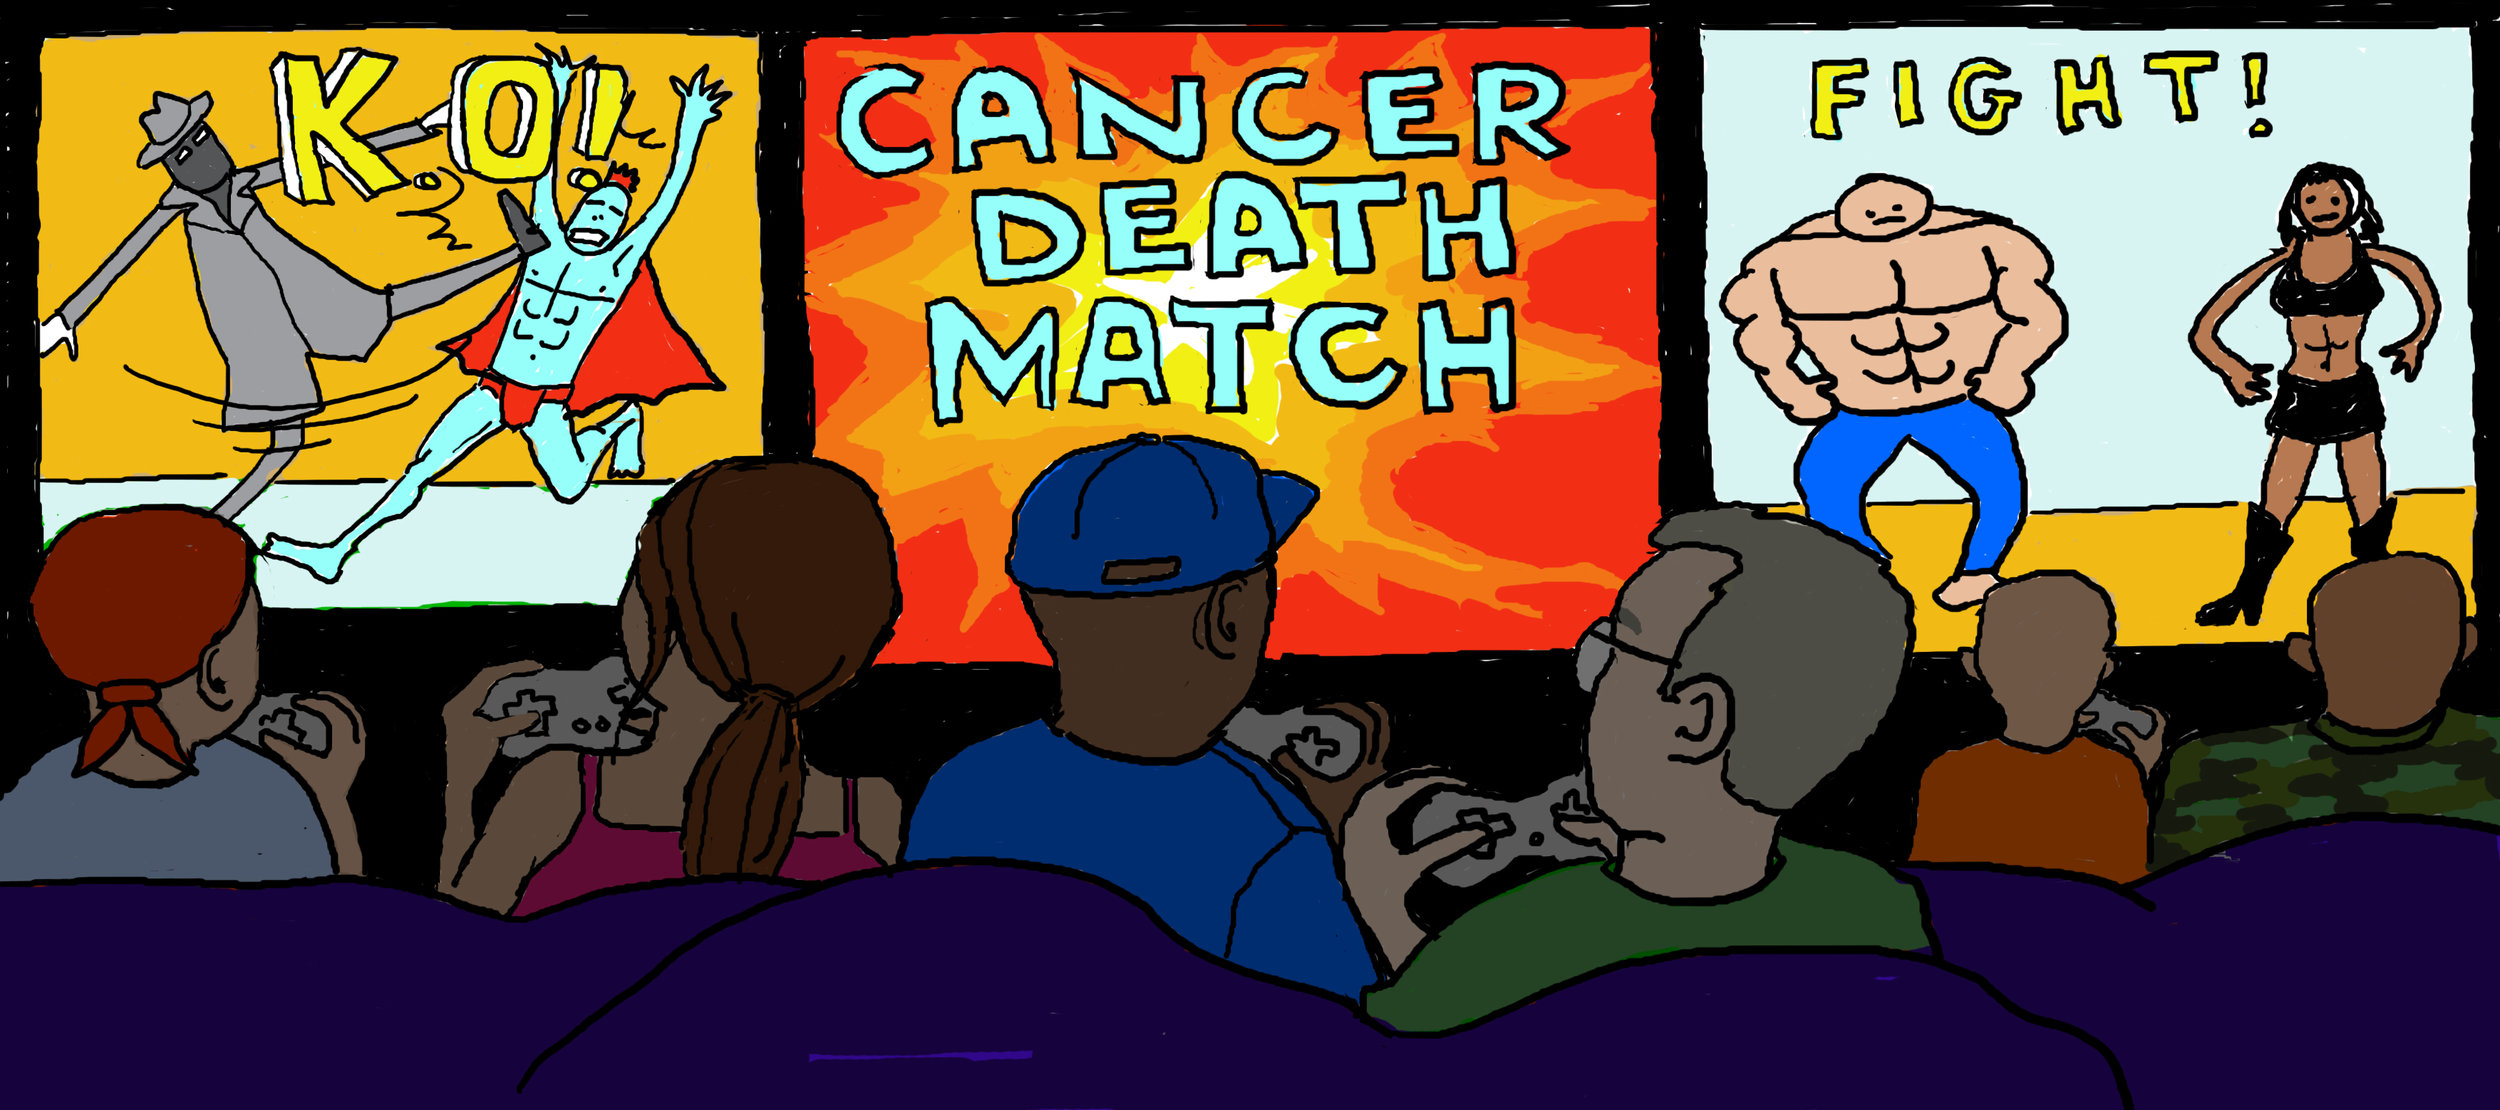 Interactive events - including CANCER DEATH MATCH (with Holestar), Sex, Cancer & Cocktails (w. A Mears, B. McCann, J. Stacey) and What the Treat Meant (with C. Long)